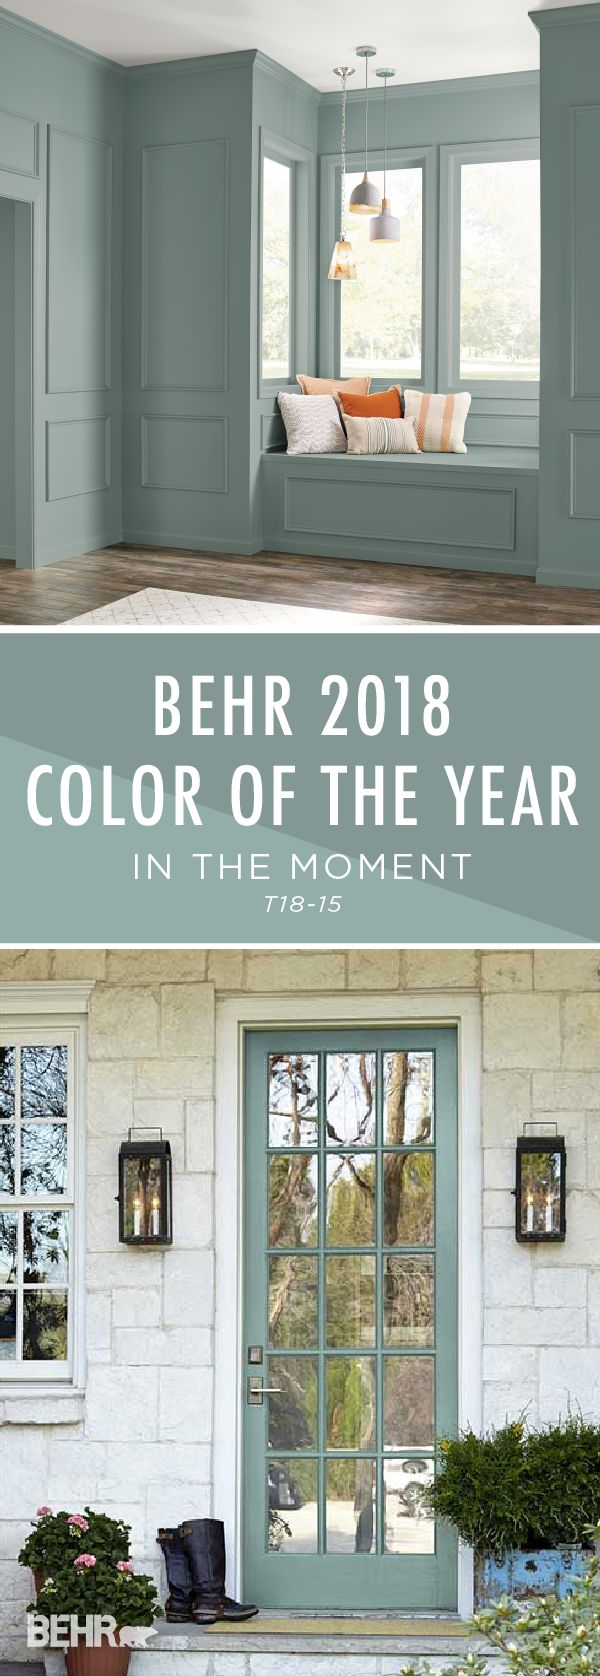 105 best BEHR 2018 Color Trends images on Pinterest | 2018 color ...